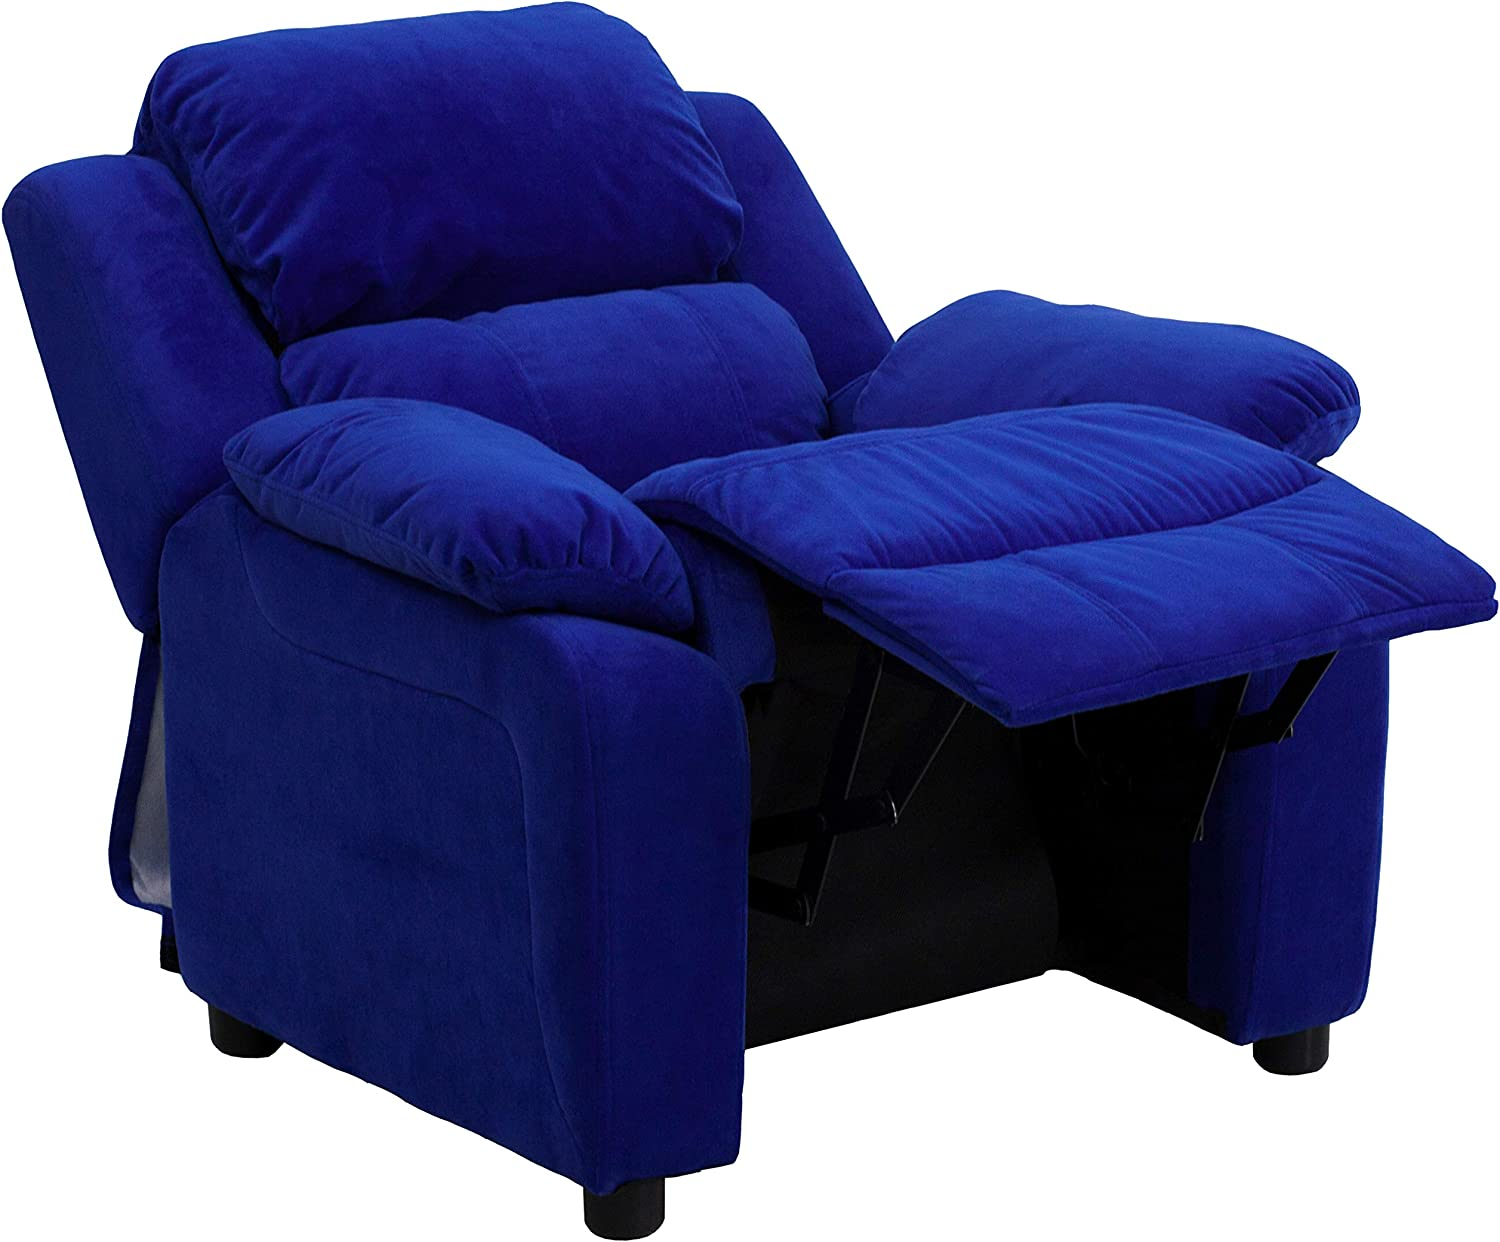 Flash Furniture Deluxe Padded Contemporary Blue Microfiber Kids Recliner with Storage Arms,